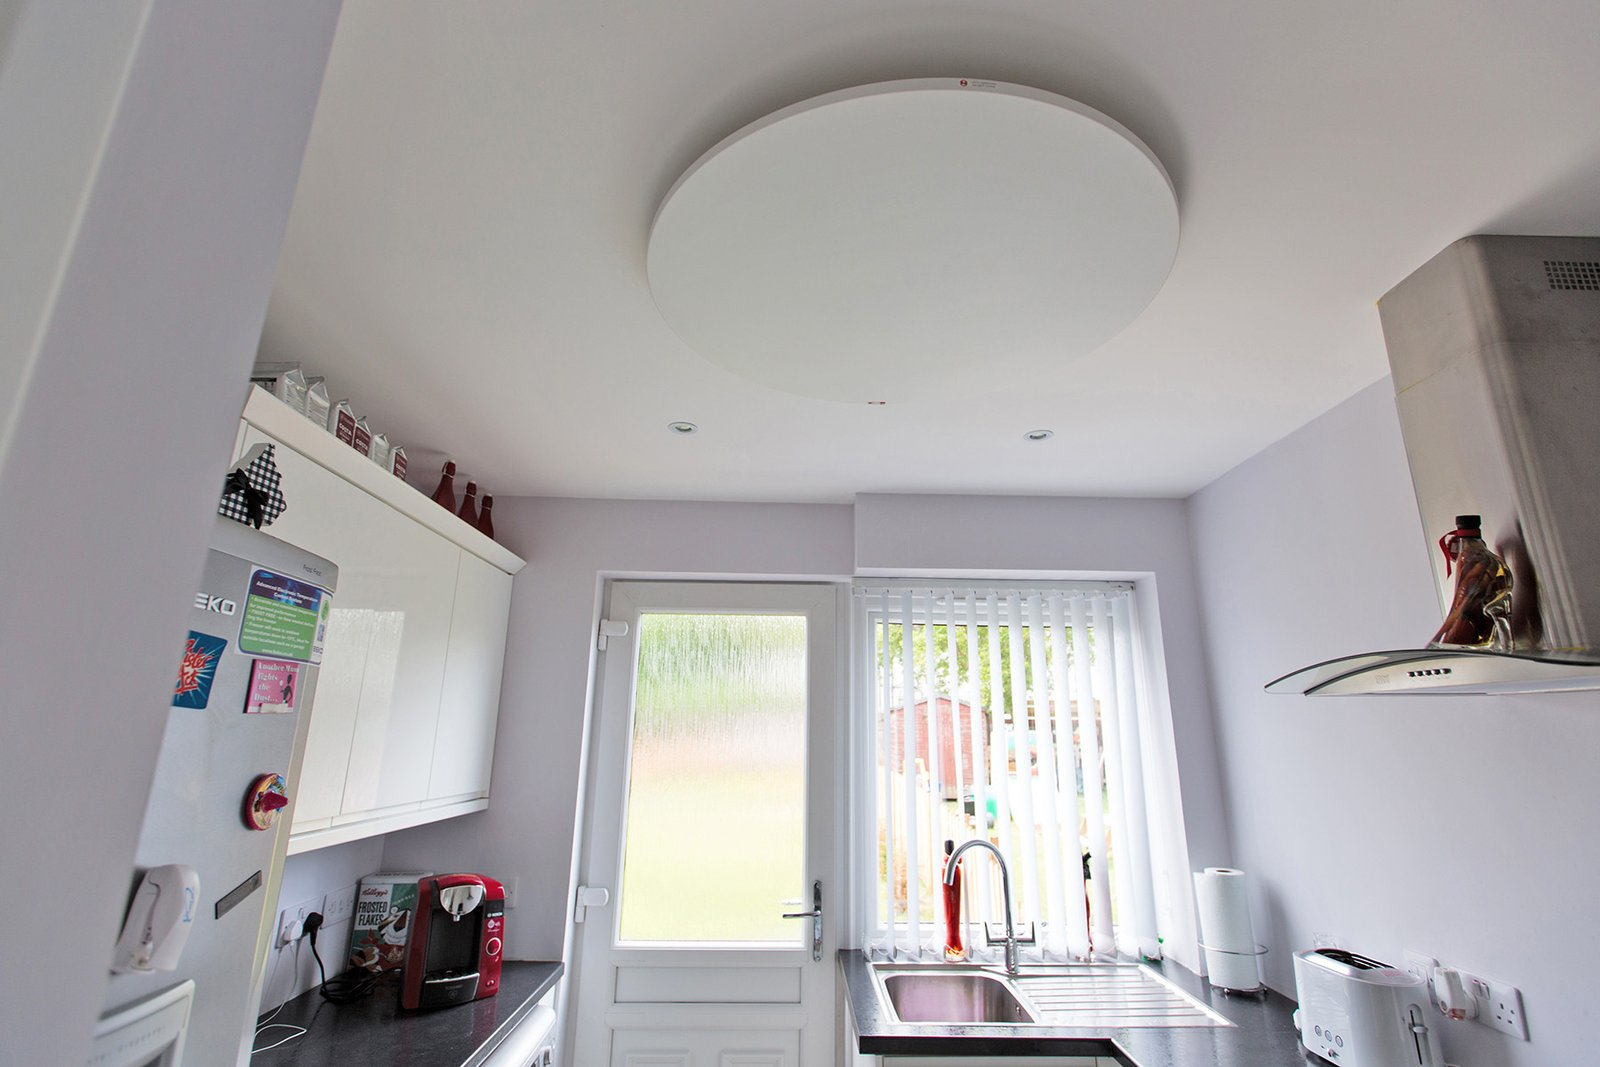 Redwell_infrared_heater_ceiling_round_smallspace_1600x1600